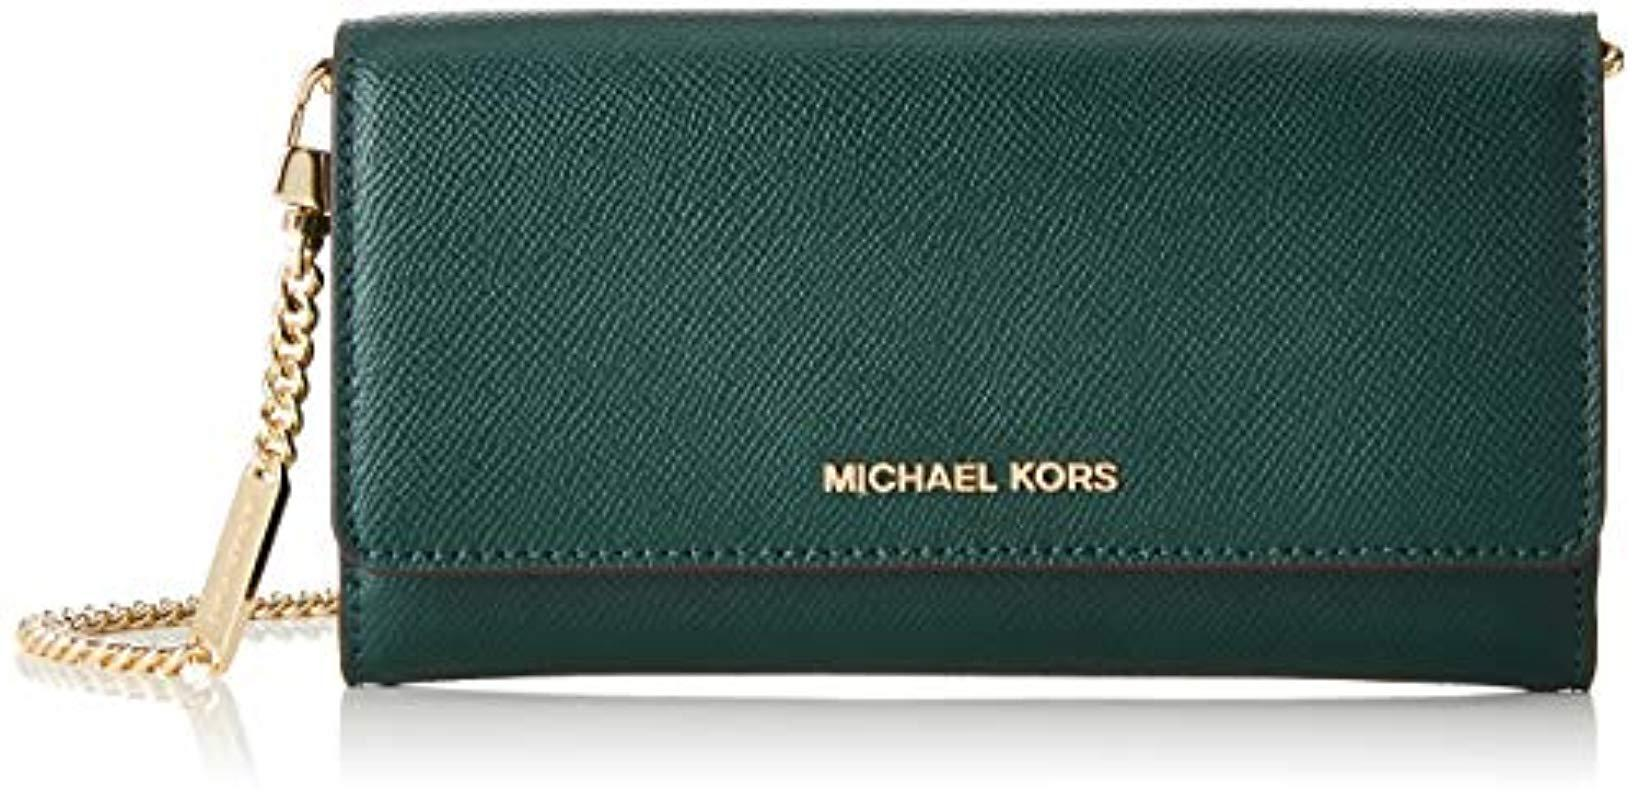 ad1c71303012 Michael Kors - Green Large Two-tone Leather Convertible Chain Wallet, 's  Multicolour. View fullscreen